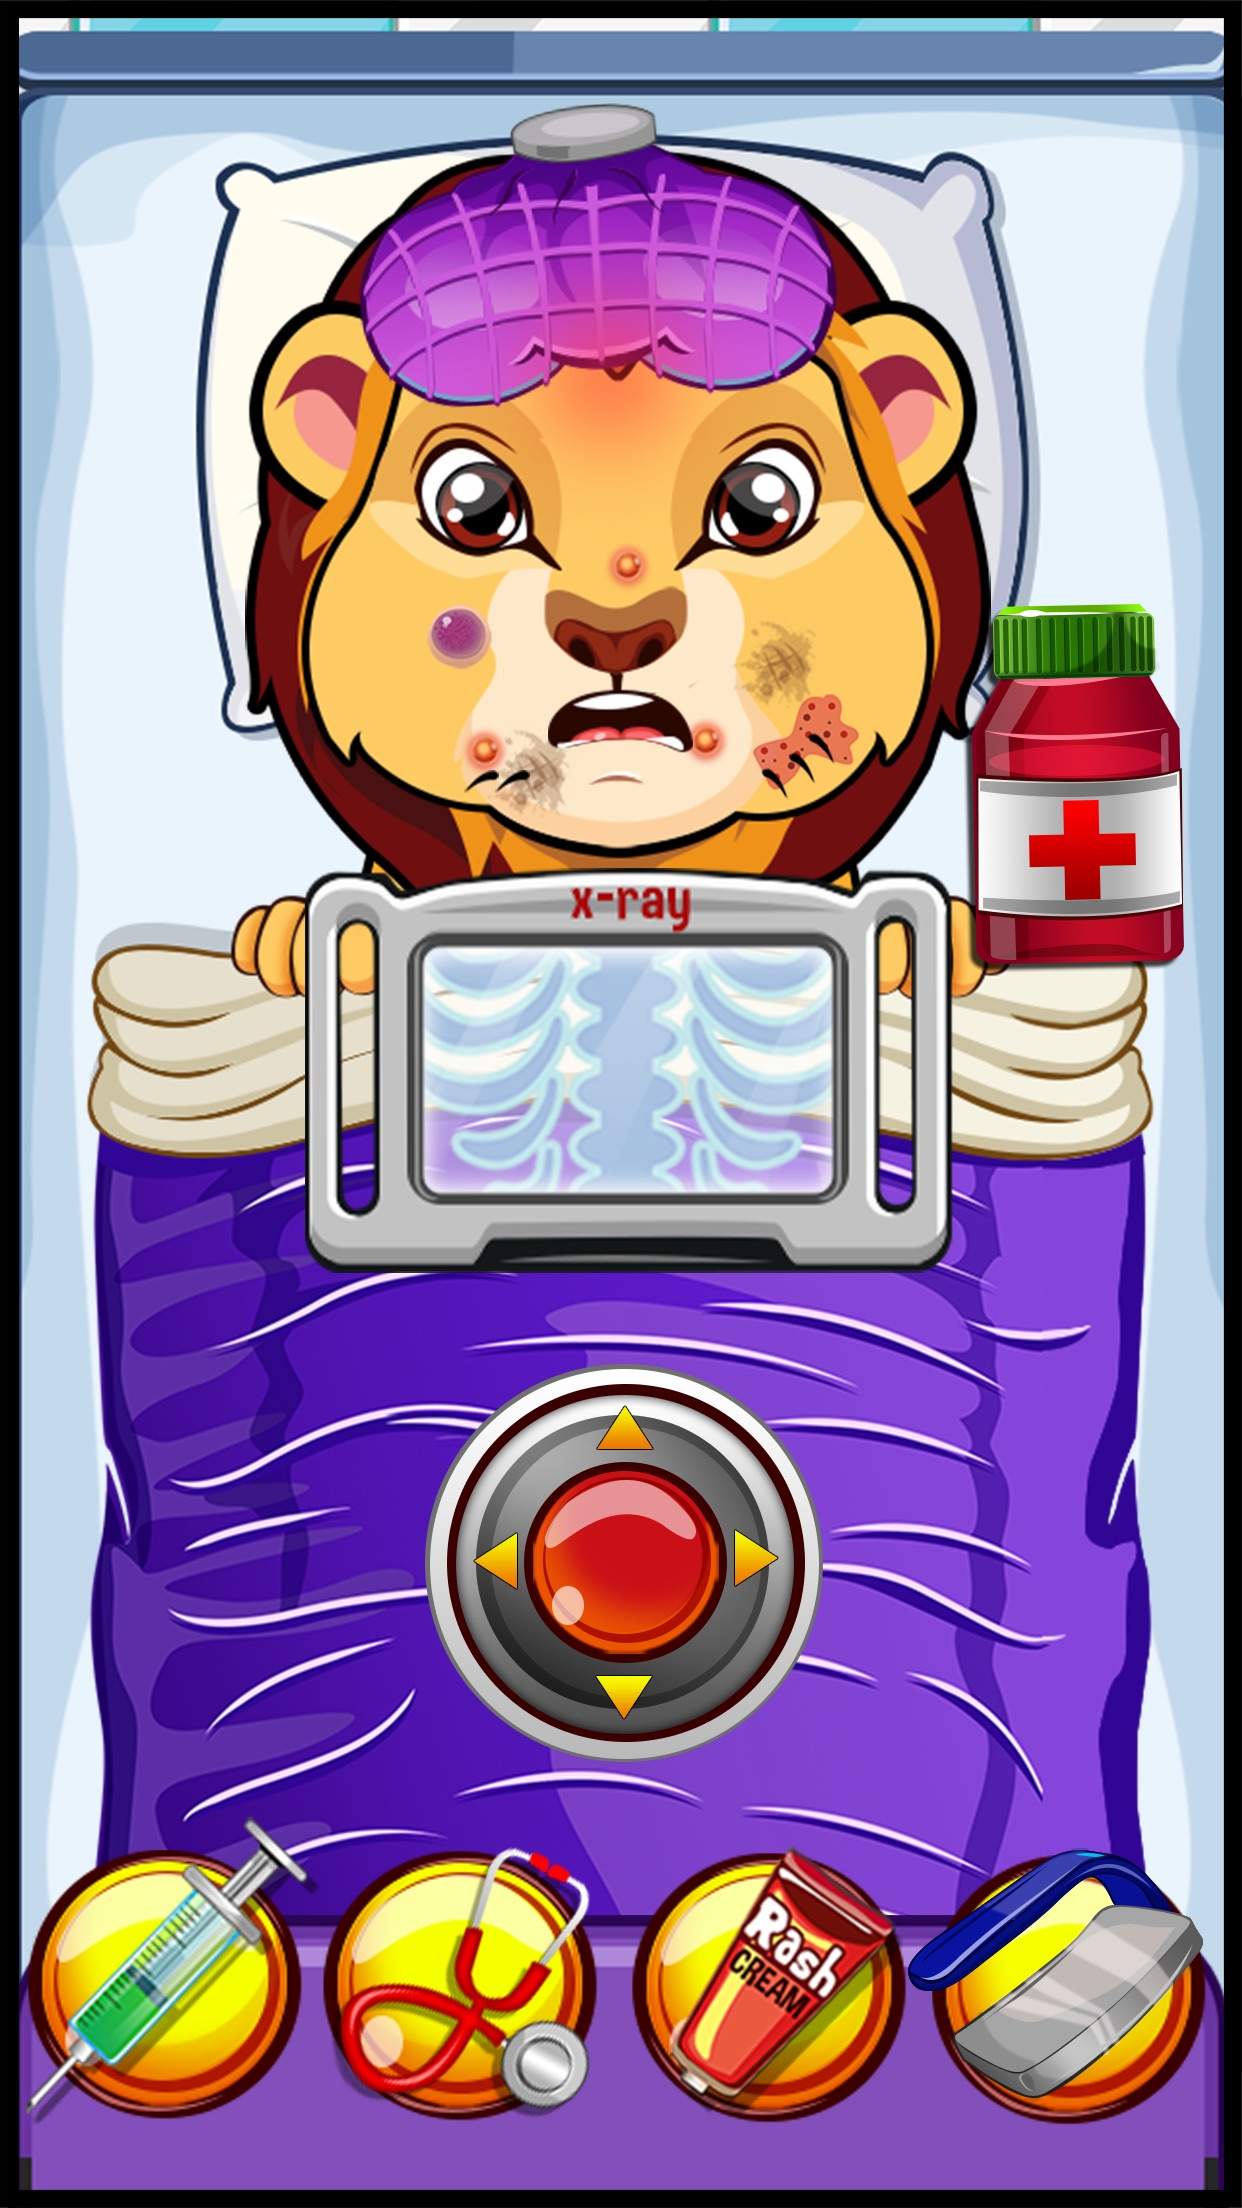 A Little Crazy Pet Vet Baby Boo Hospital - My virtual fun care dentist doctor nose eye hair nail salon office for plush pets makeover games for kids boys & girls Screenshot